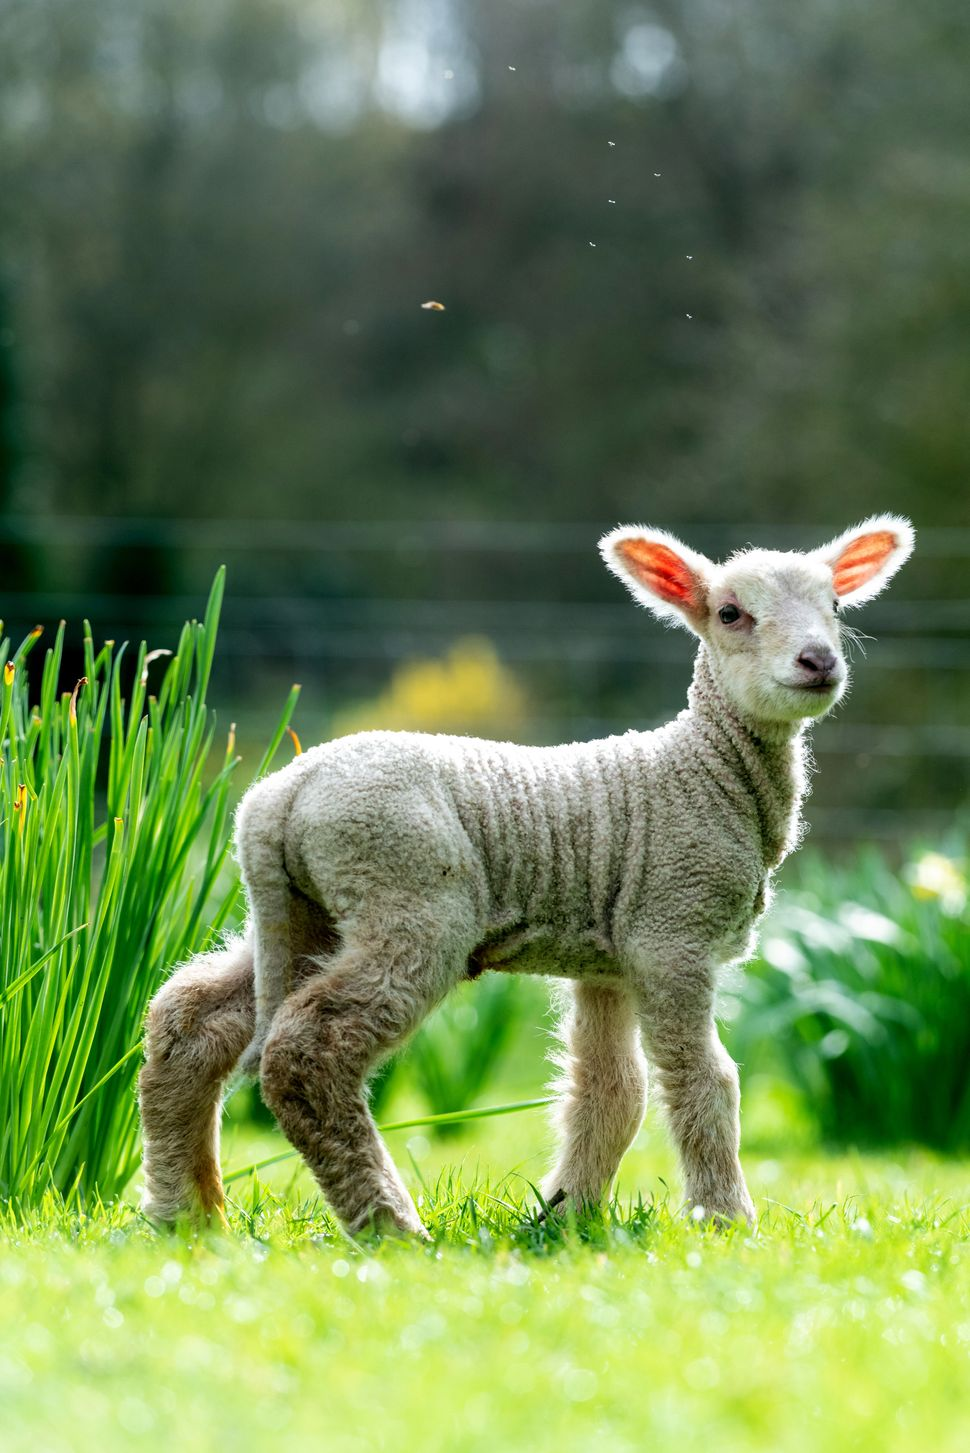 A day-old lamb explores new surroundings on the vernal equinox, which this year falls on March 20, at Coombes Farm in Lancing